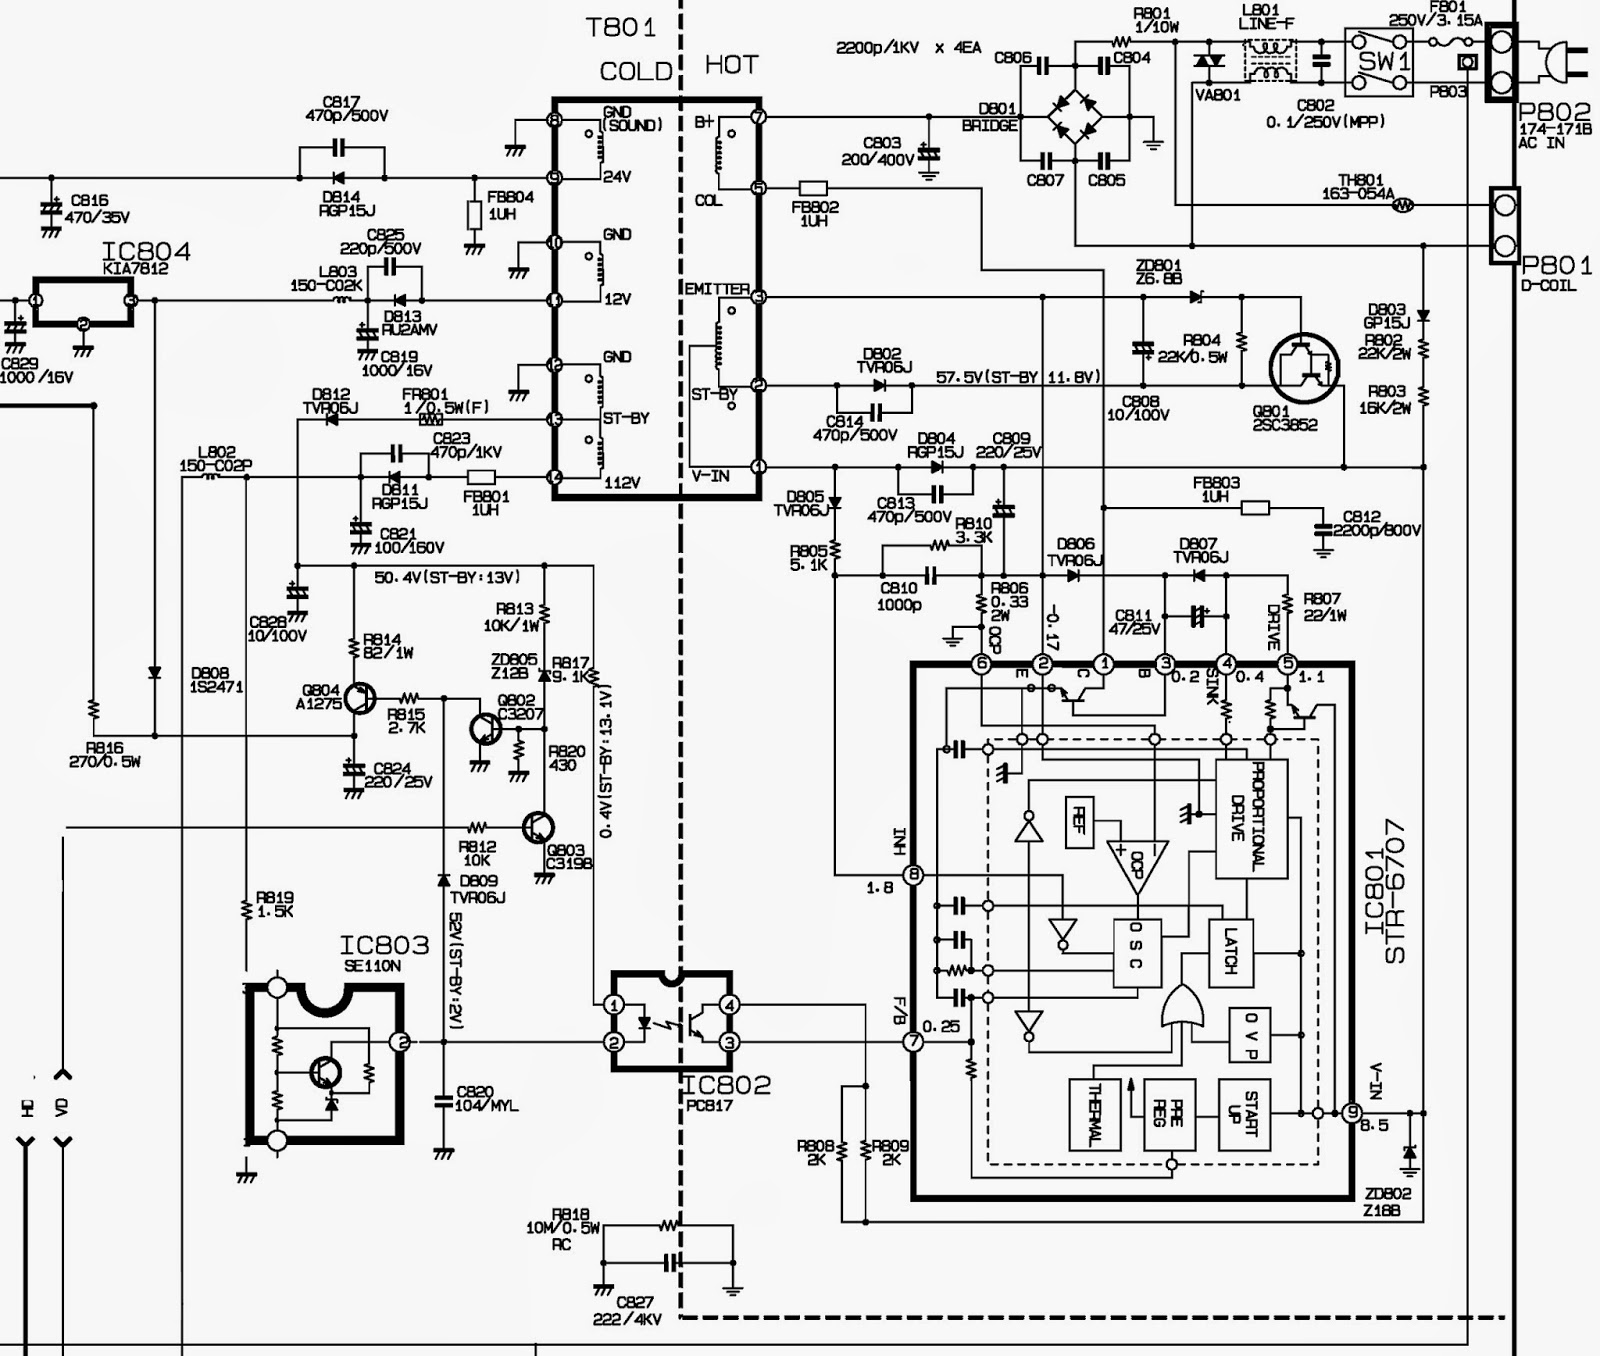 small resolution of str 6707 smps schematic circuit diagram